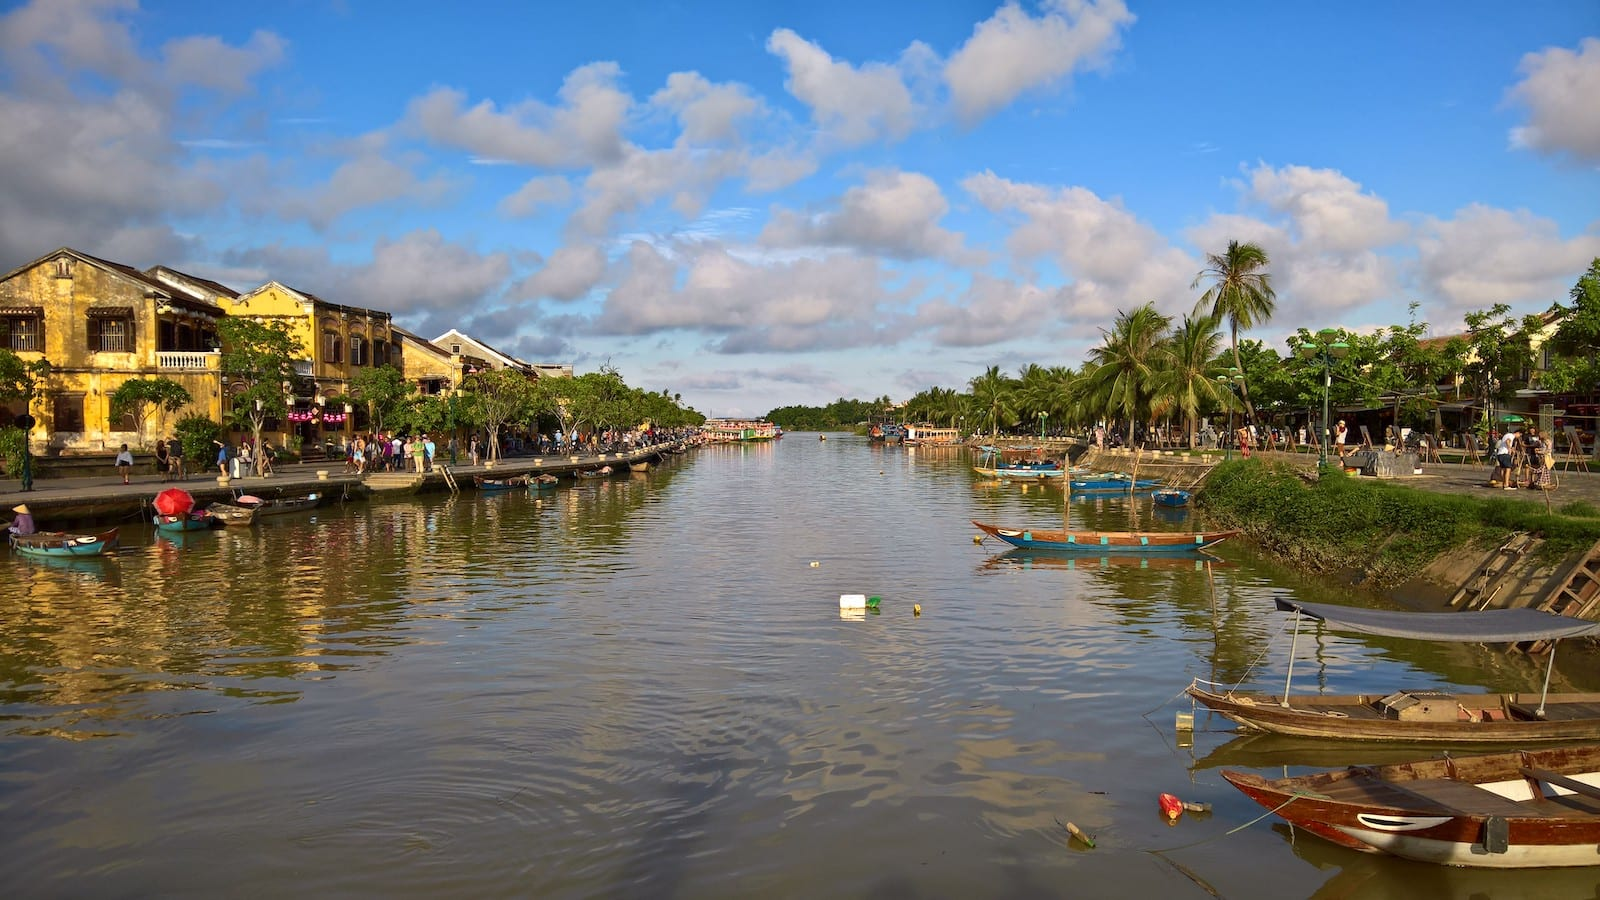 Image of the Hoai River in Vietnam